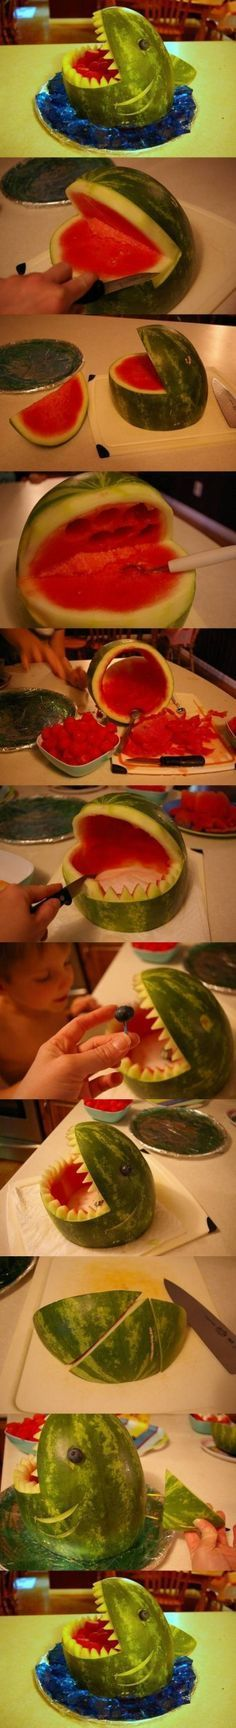 DIY Watermelon Shark Carving Internet Tutorial DIY Projects